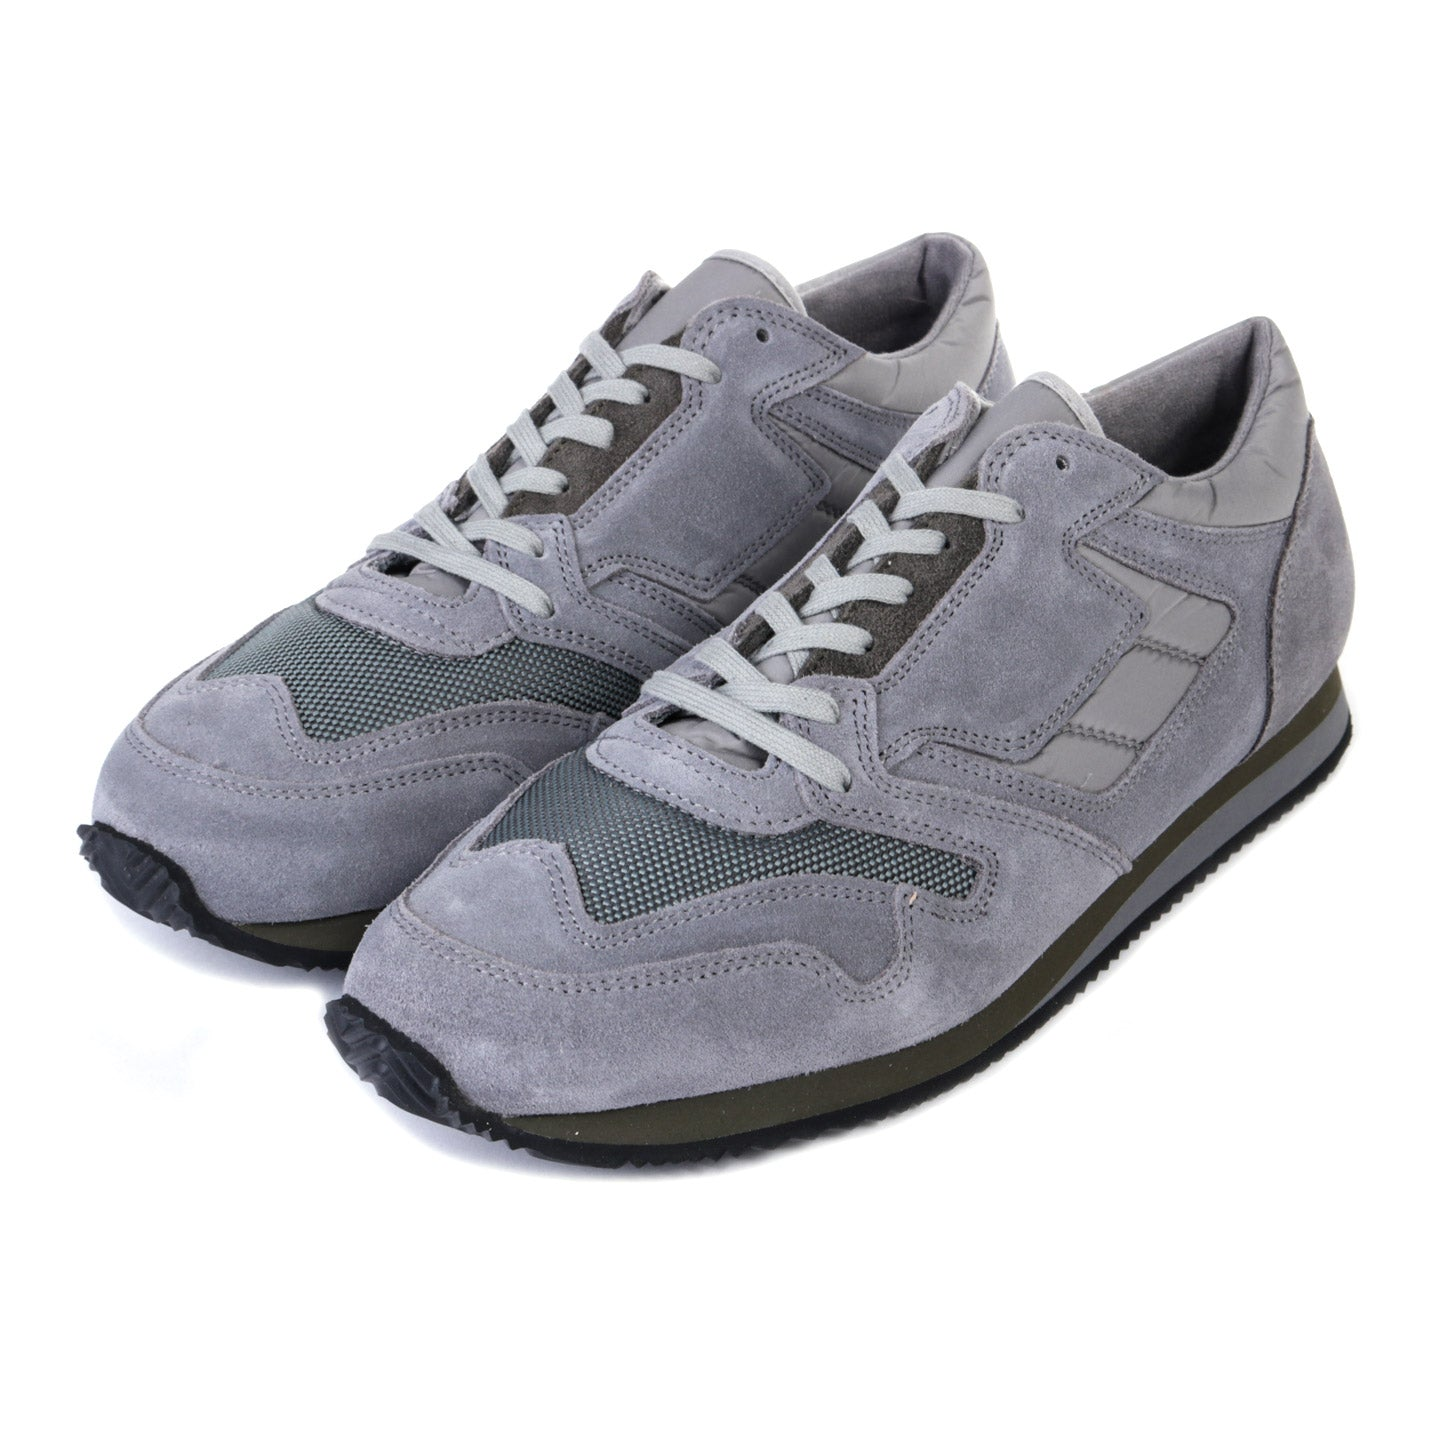 REPRODUCTION OF FOUND BRITISH MILITARY TRAINER GRAY